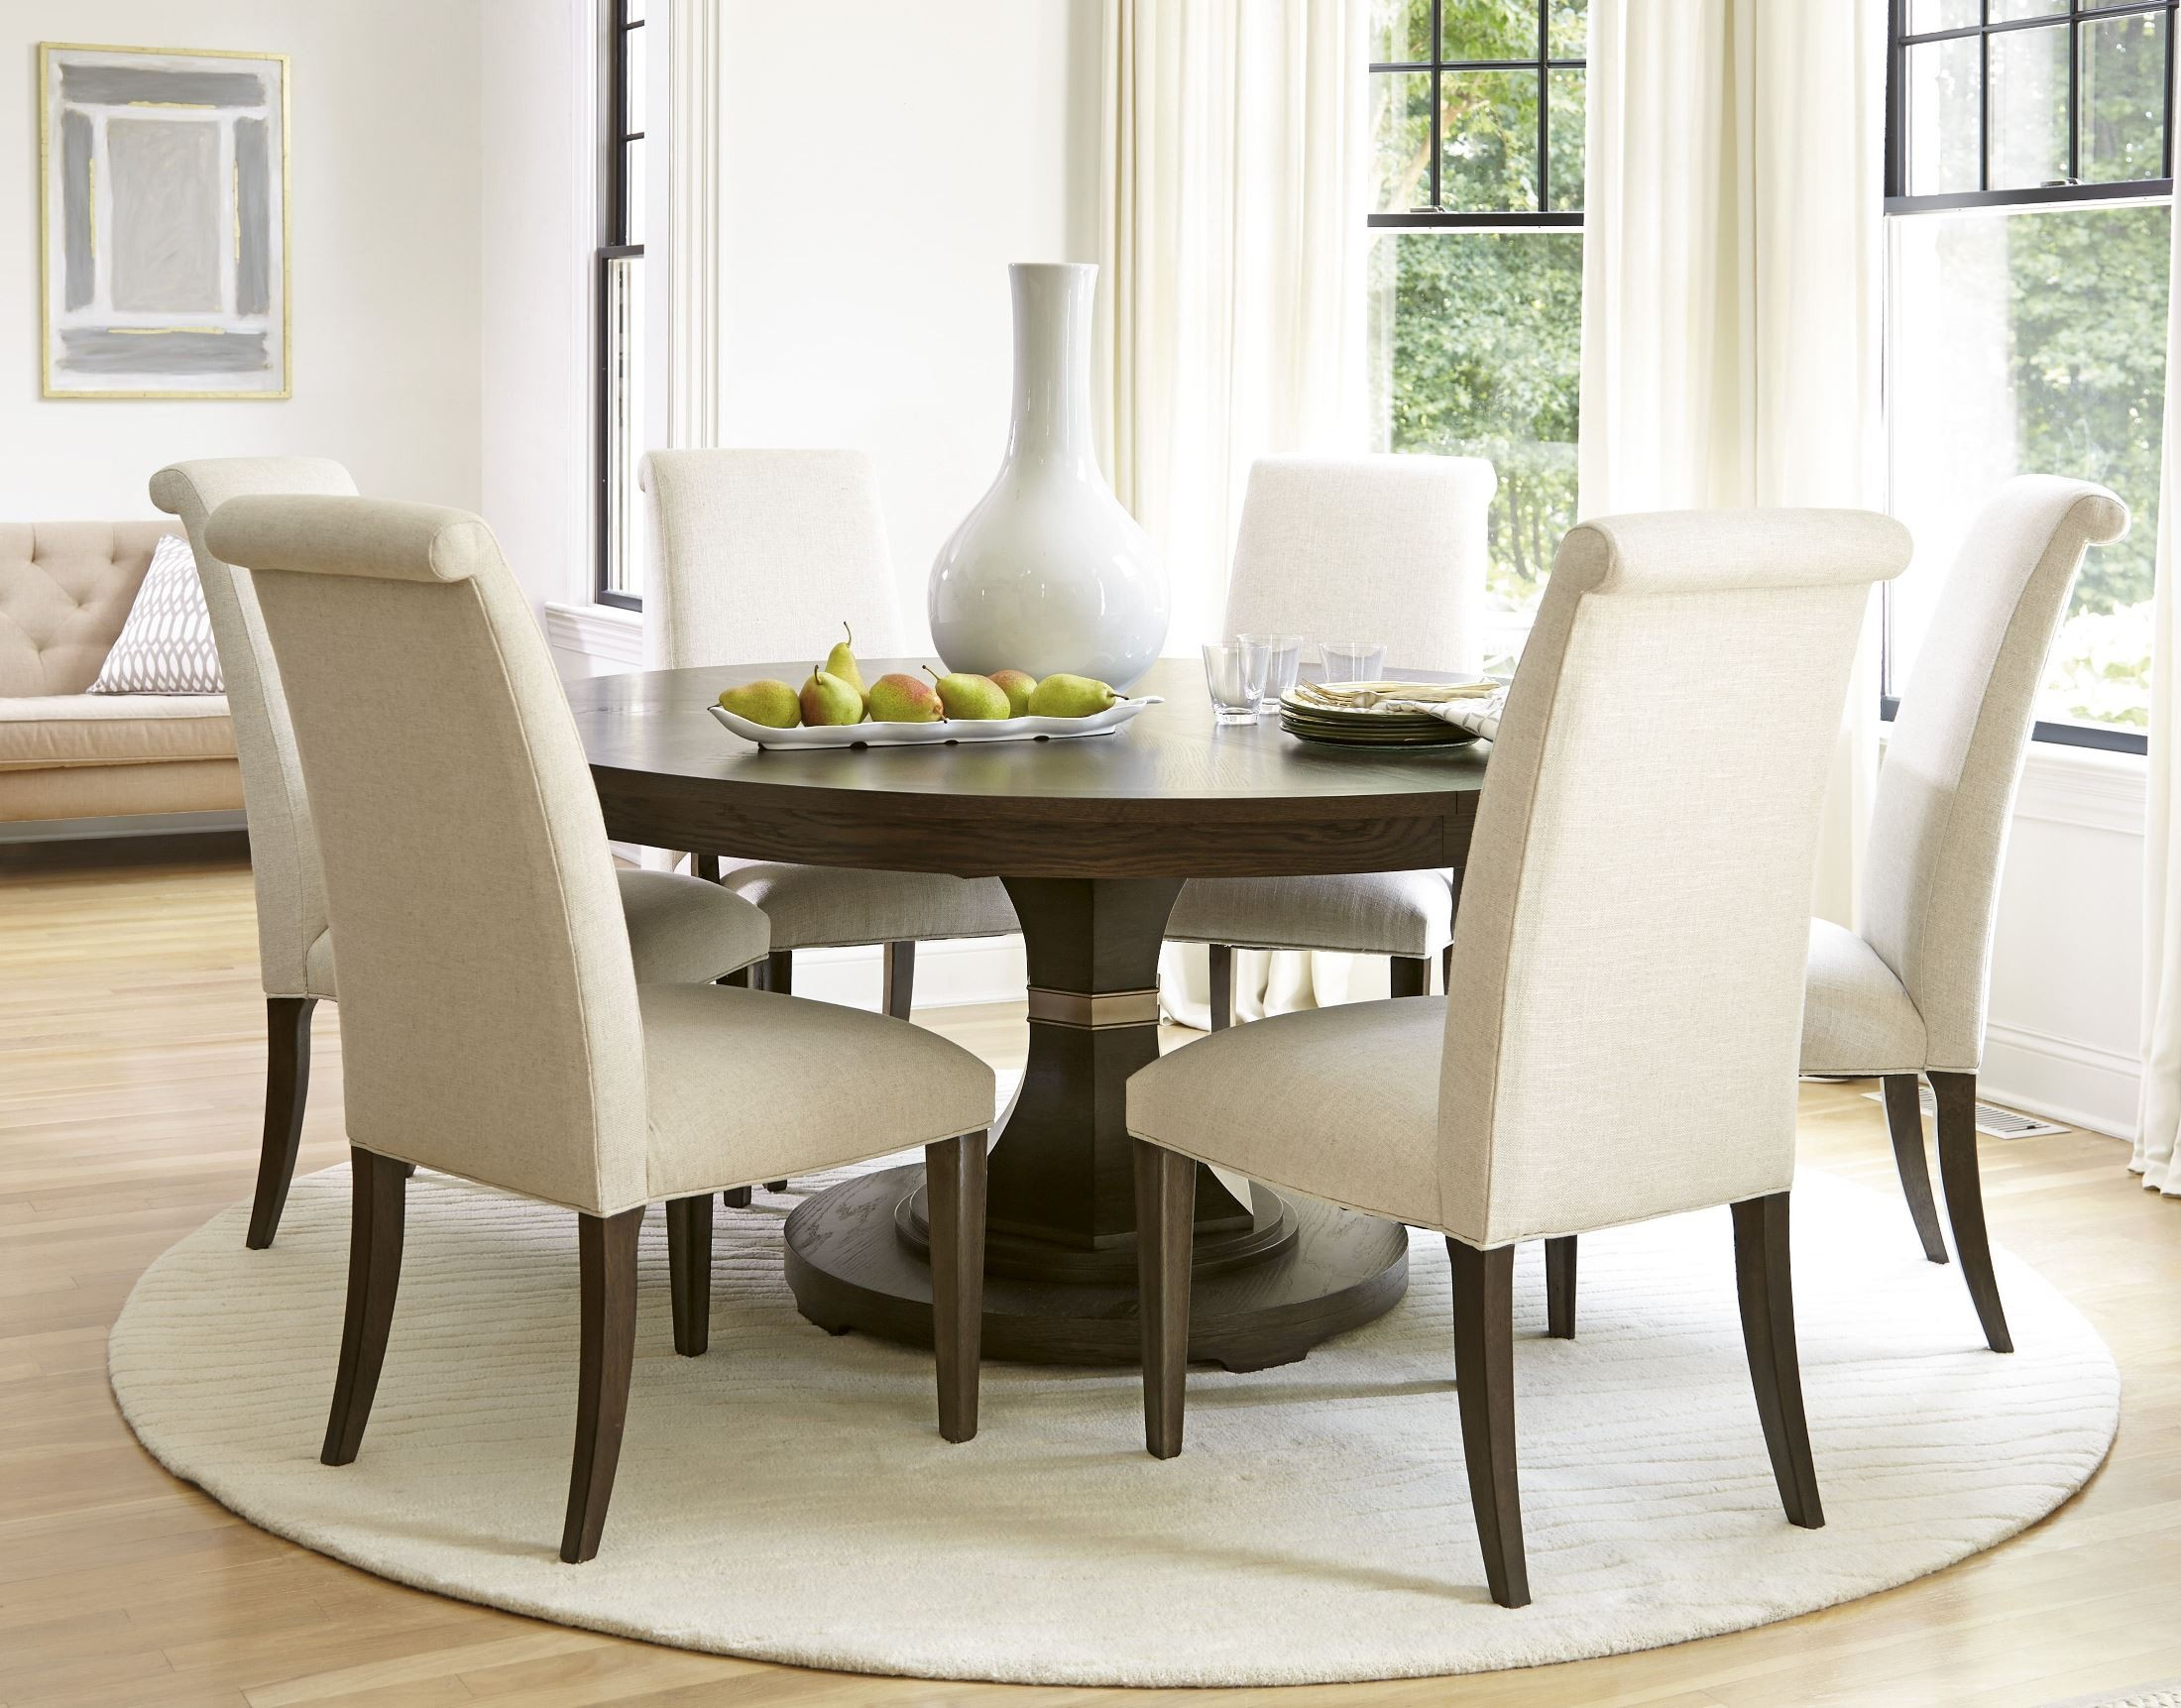 California round dining room set from universal 475657 coleman furniture - Universal furniture dining room set ...